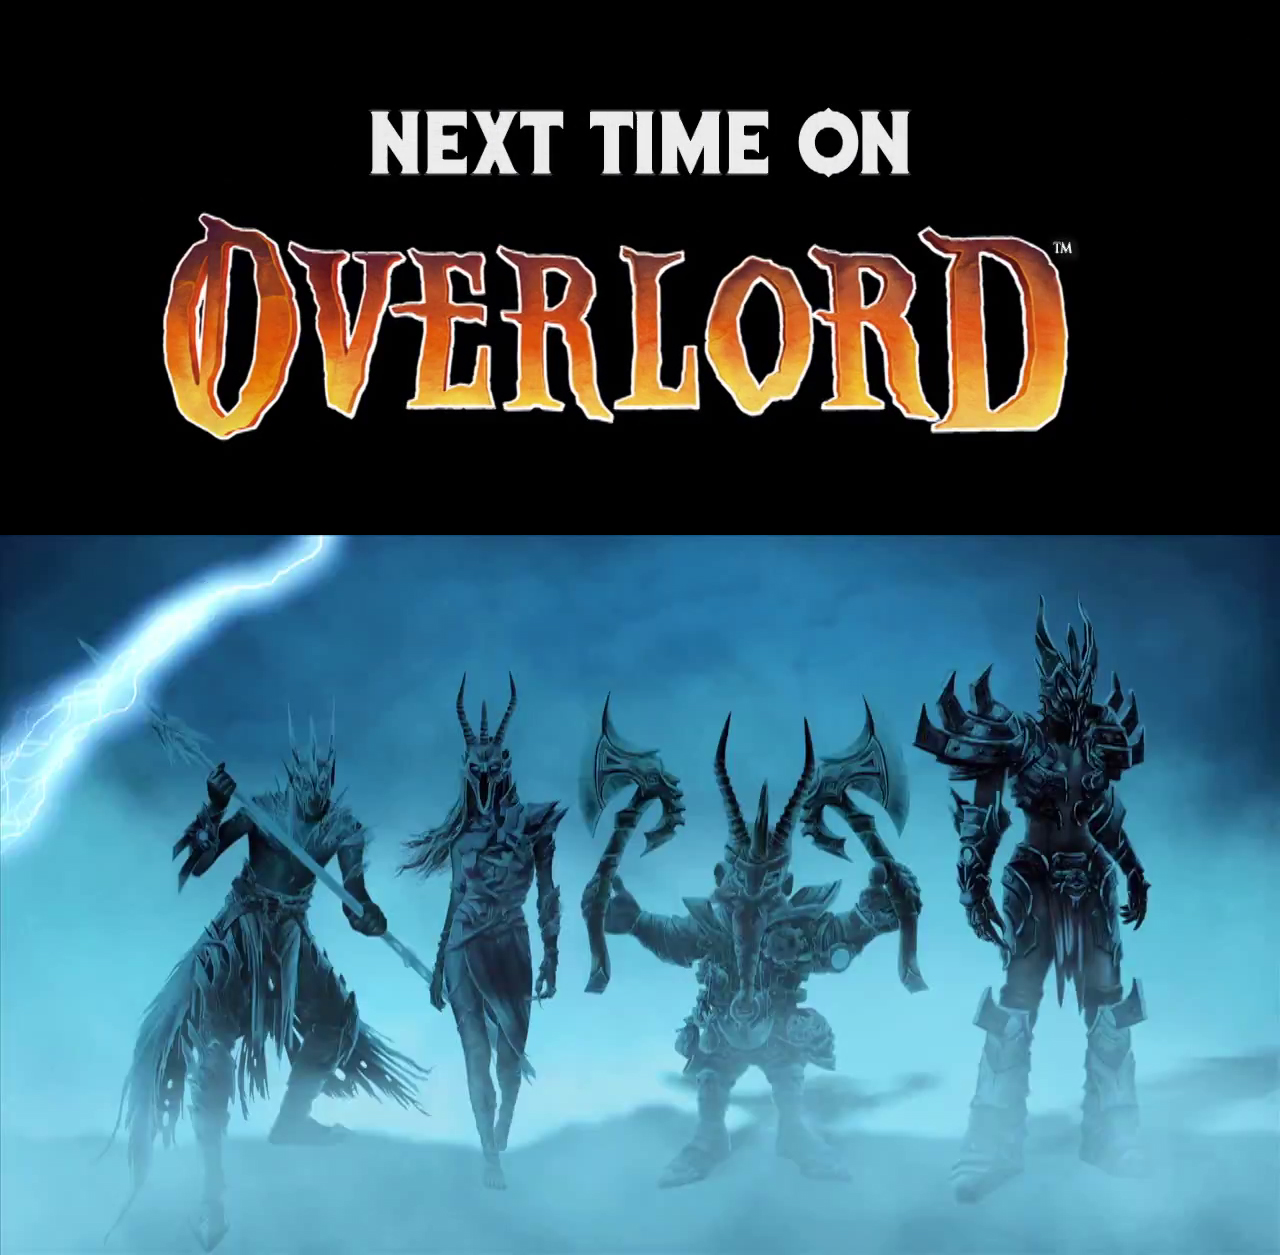 next-time-on-overlord